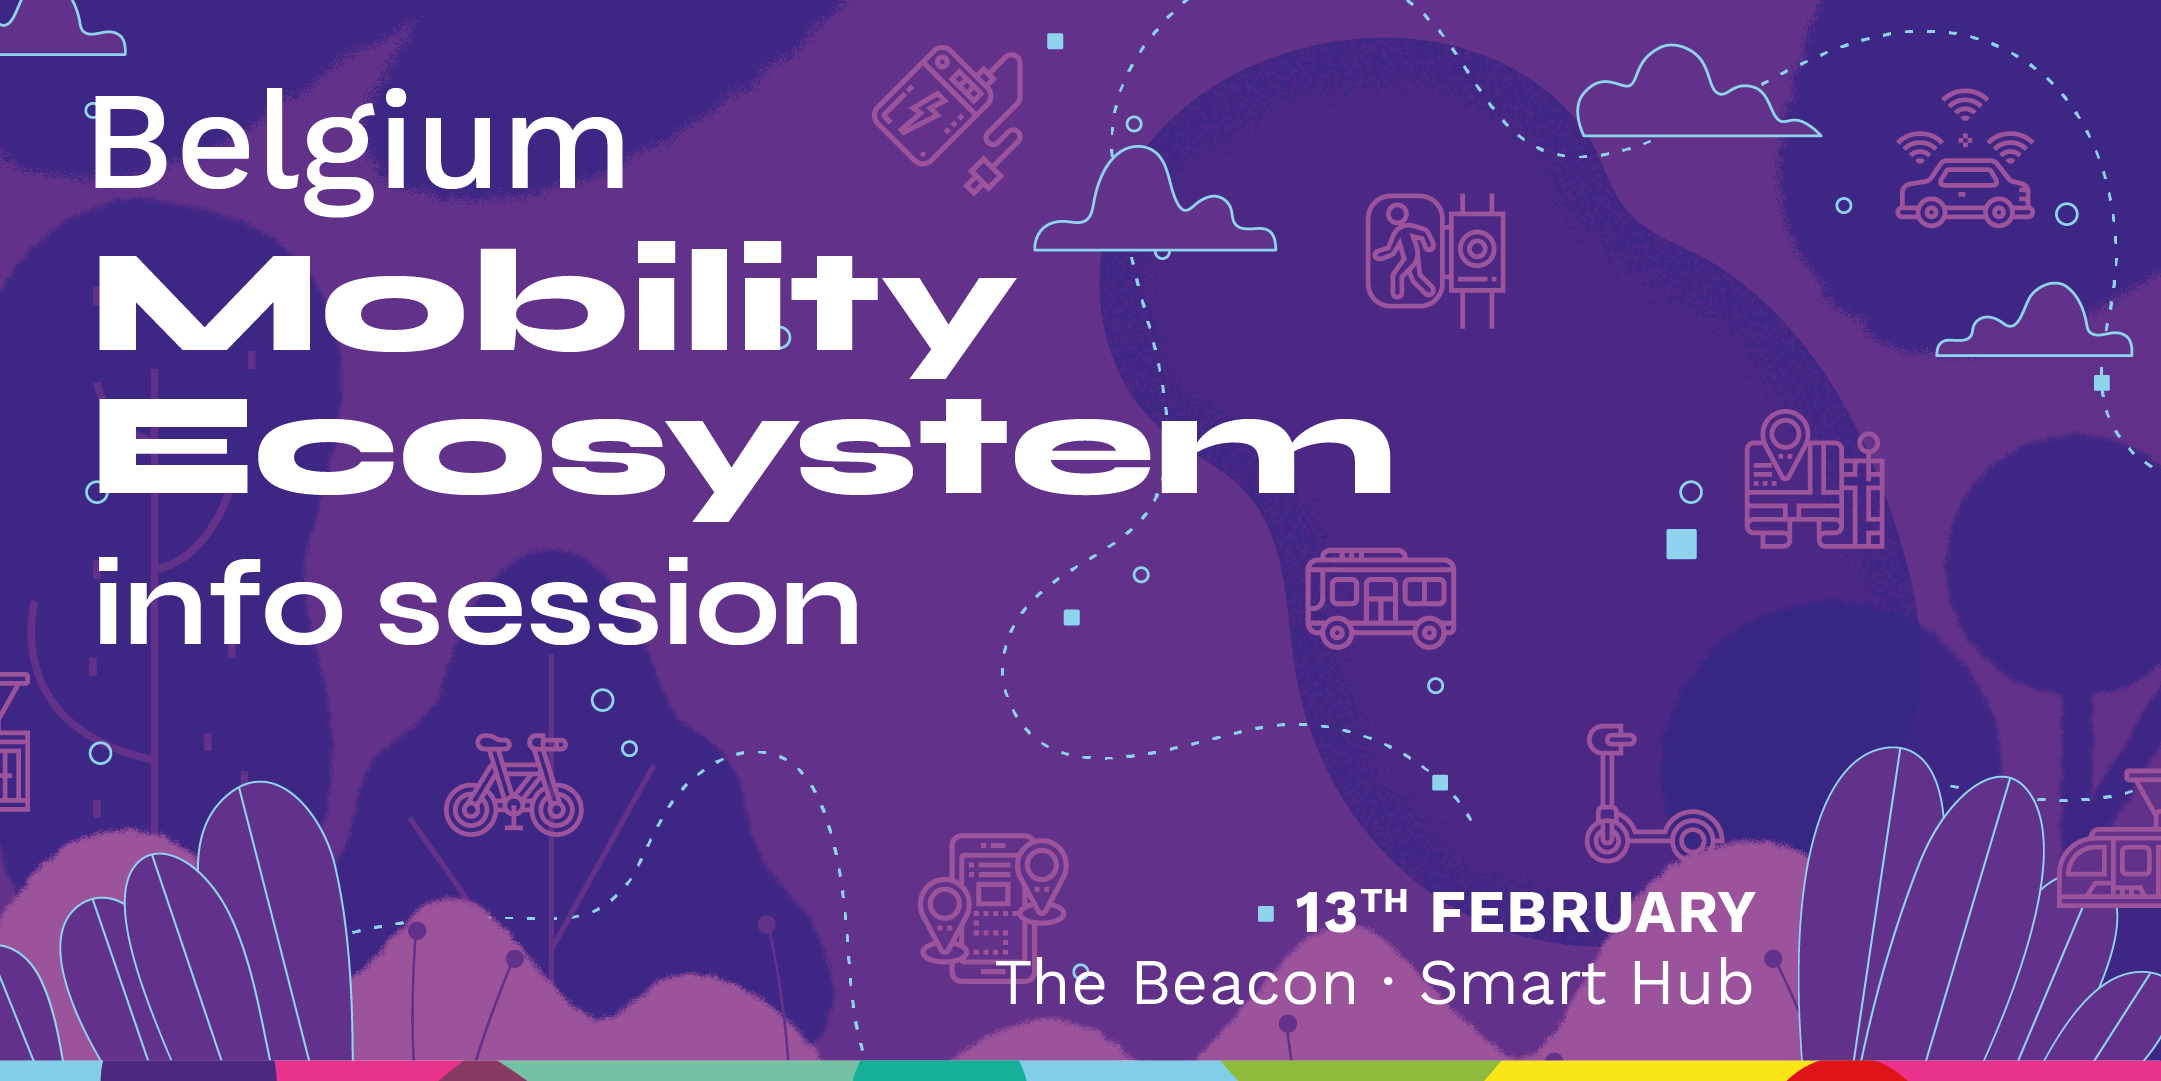 Co.Station Events | Mobility Ecosystem | Info Session | The Beacon